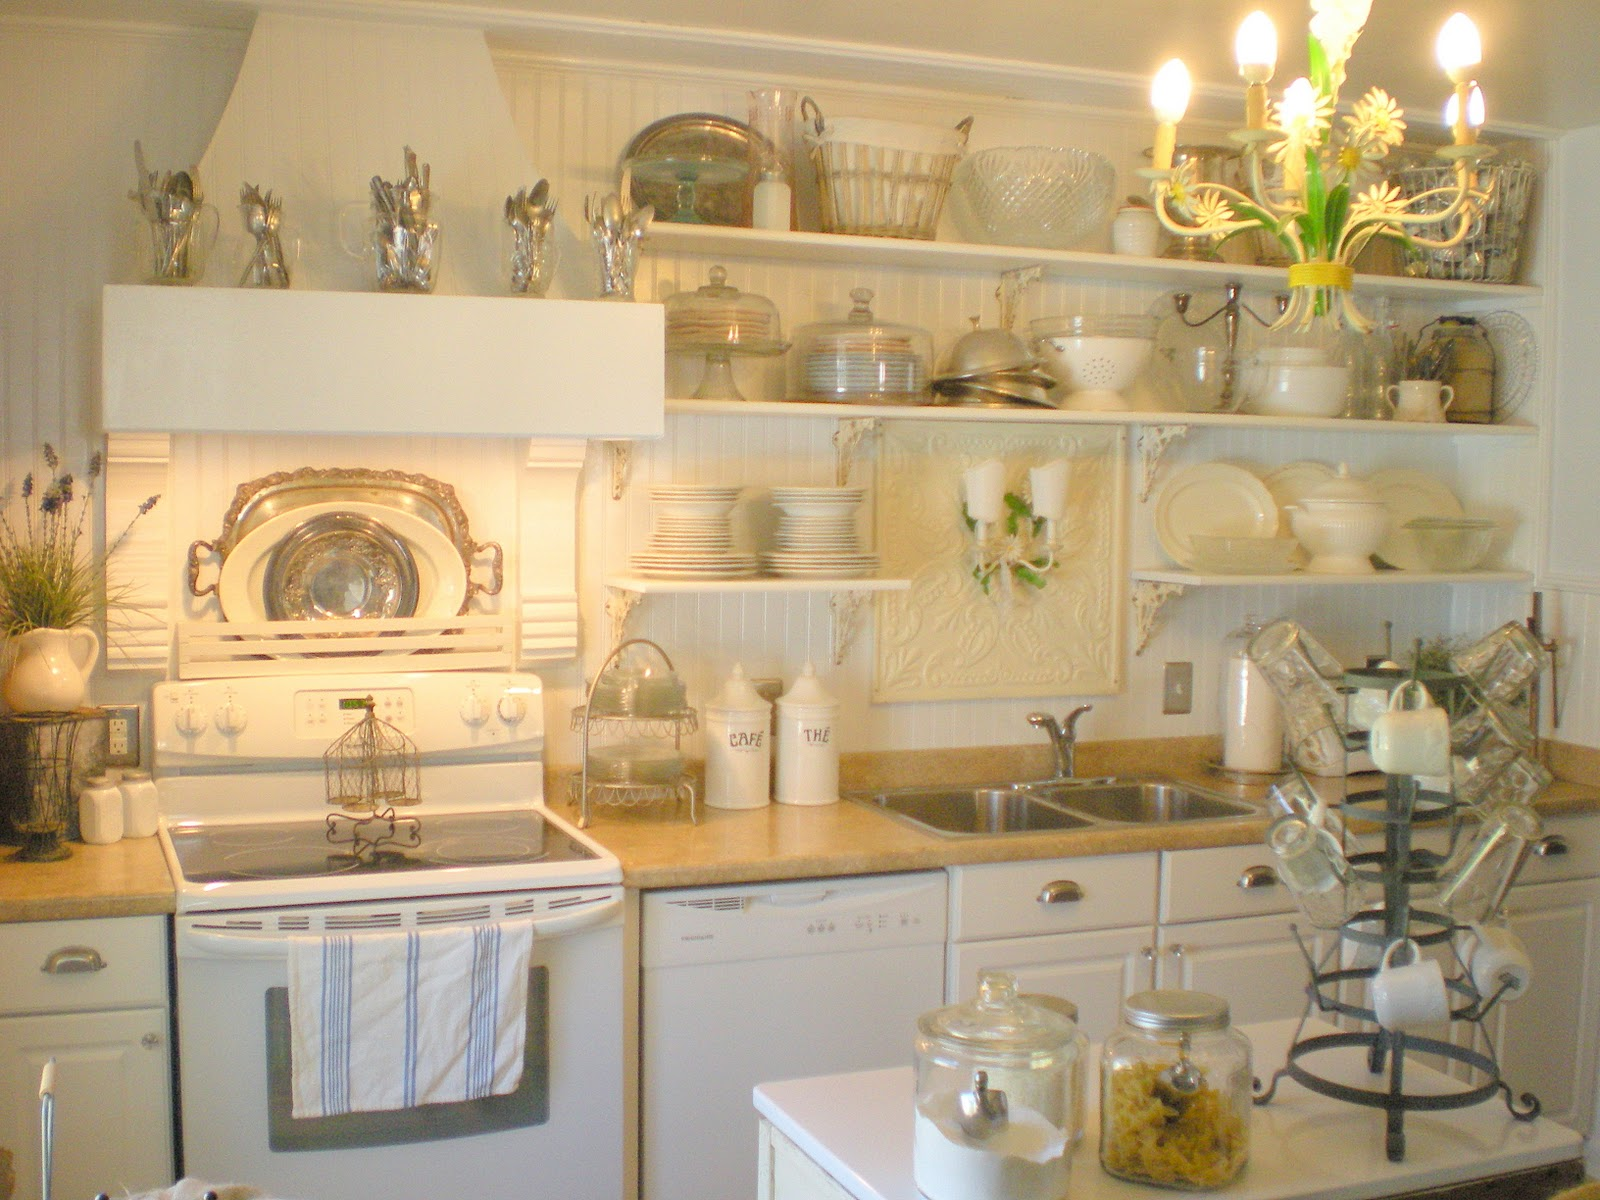 Cottage Kitchen Cabinets Modern Hardware Remodelaholic French Farm Style Renovation